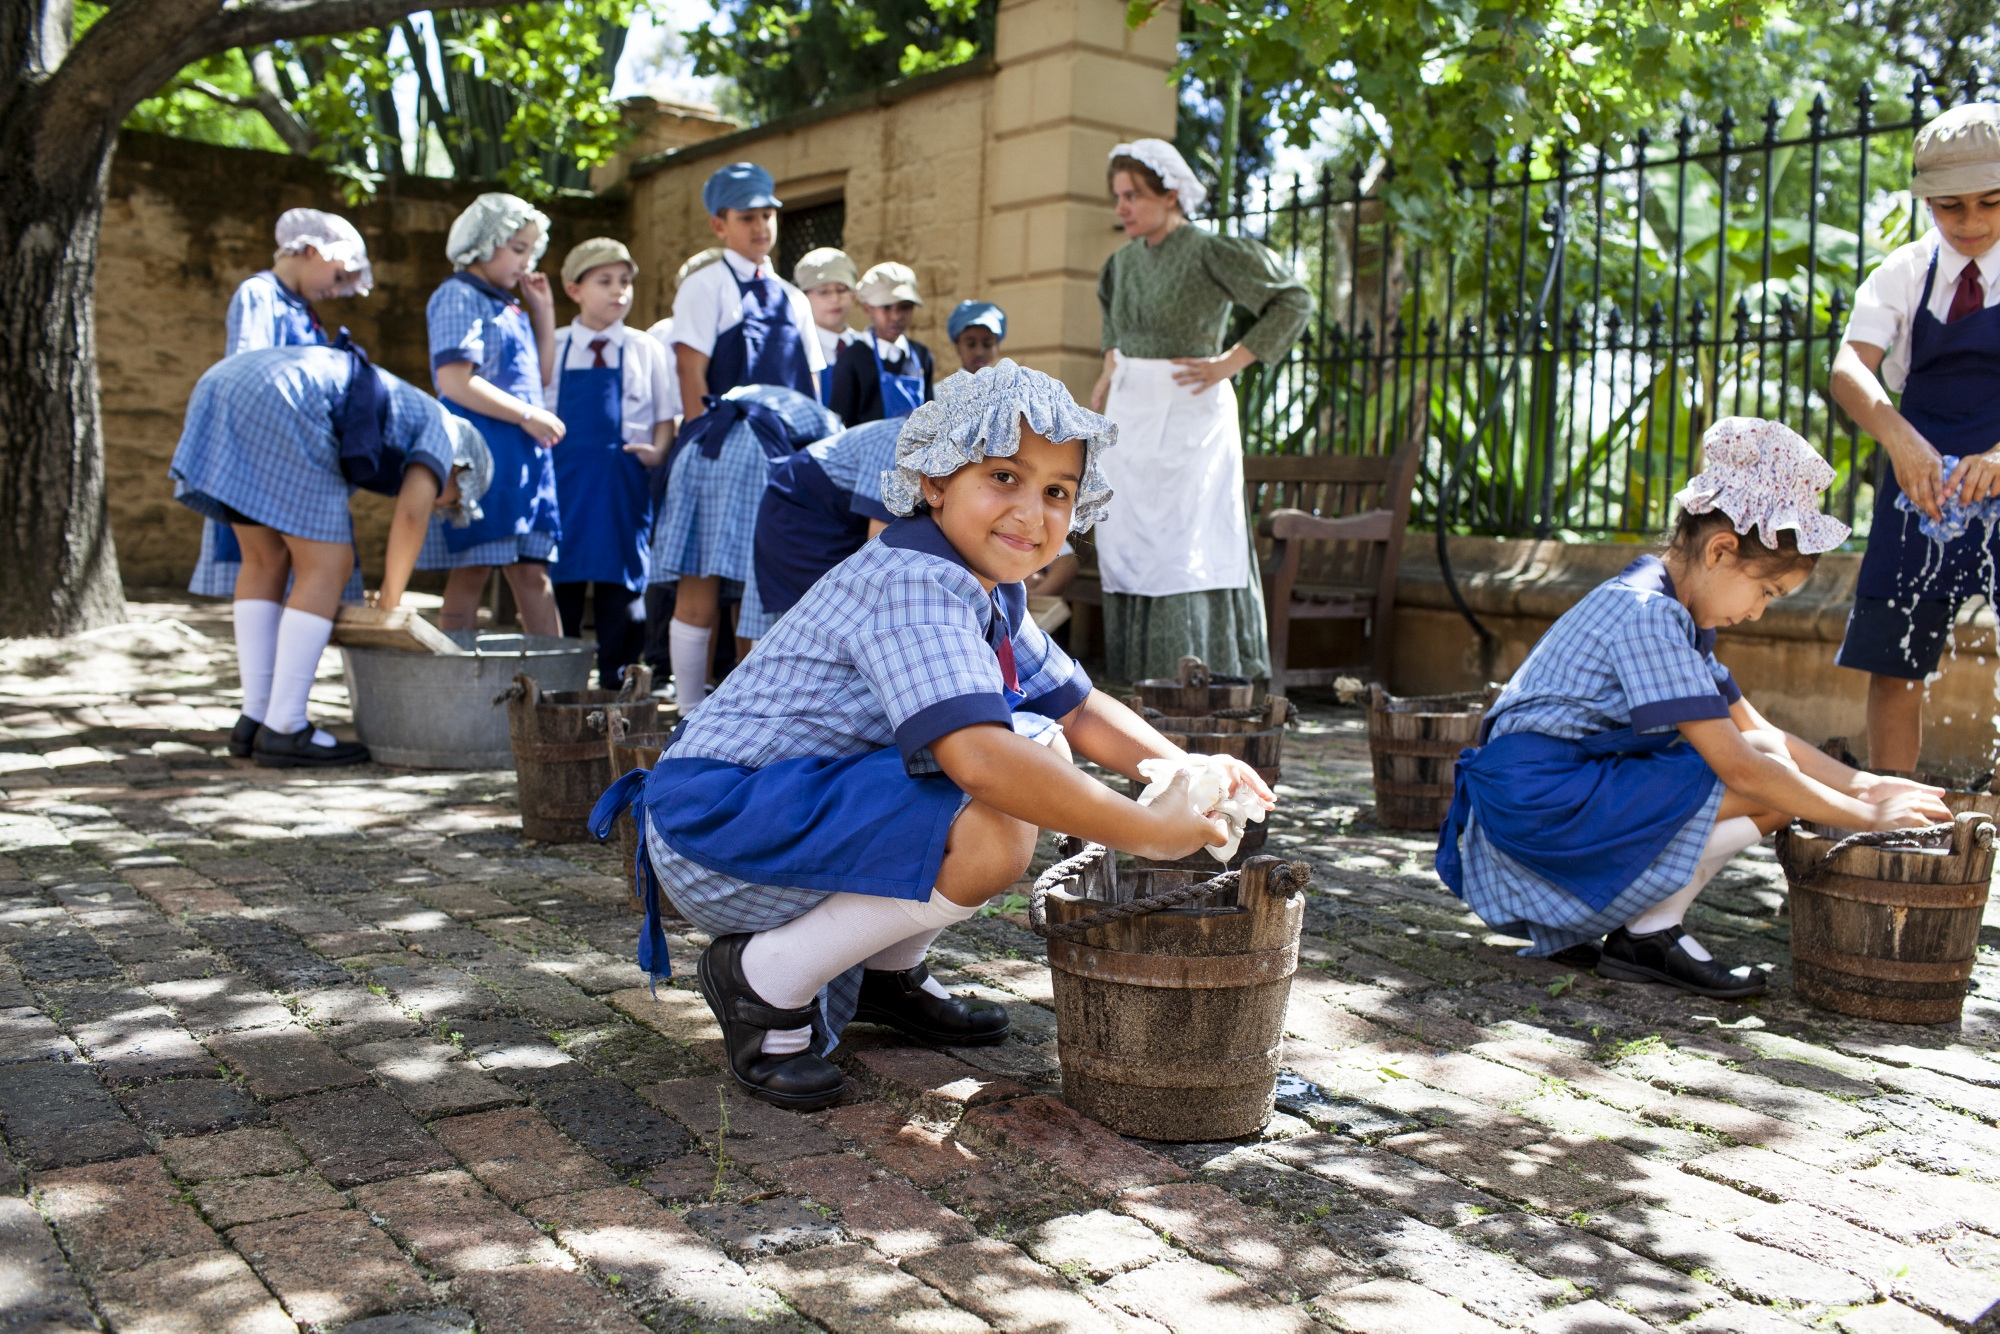 Students dressed up in stone courtyard with washing buckets and laundry.